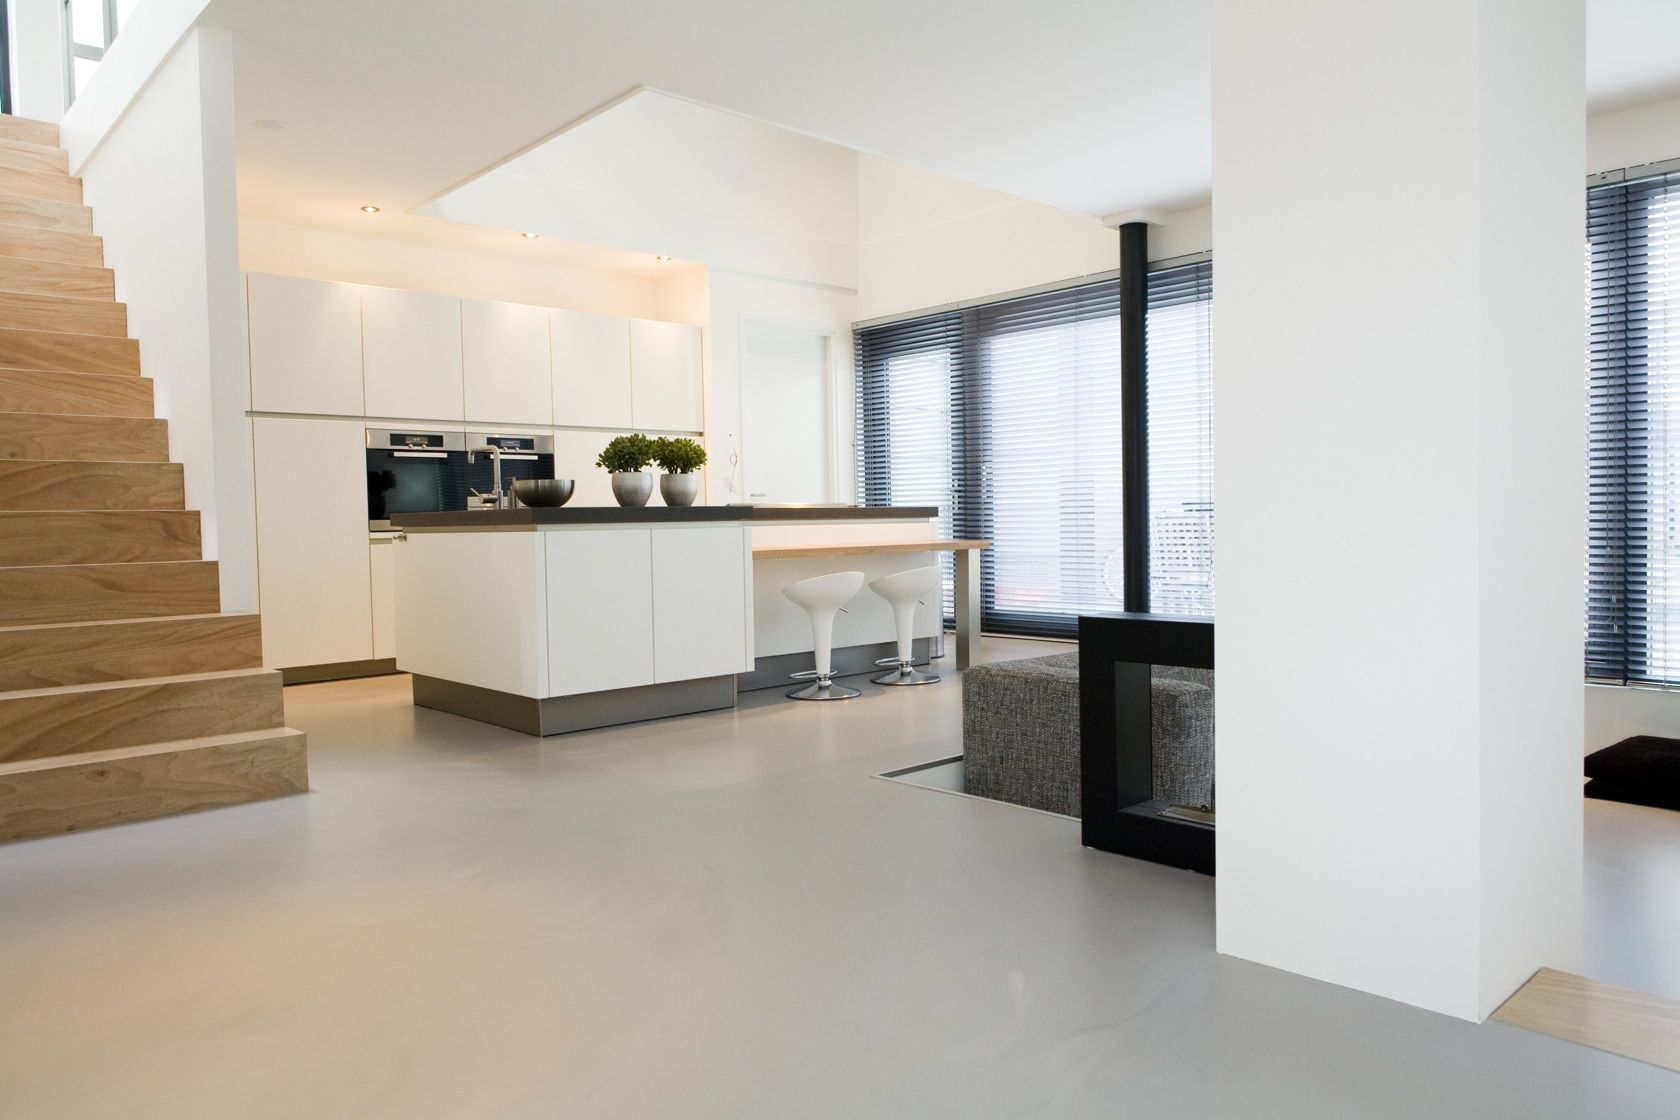 Resin Flooring Kitchen Flooring Senso Poured Resin Flooring In Light Gray Floors